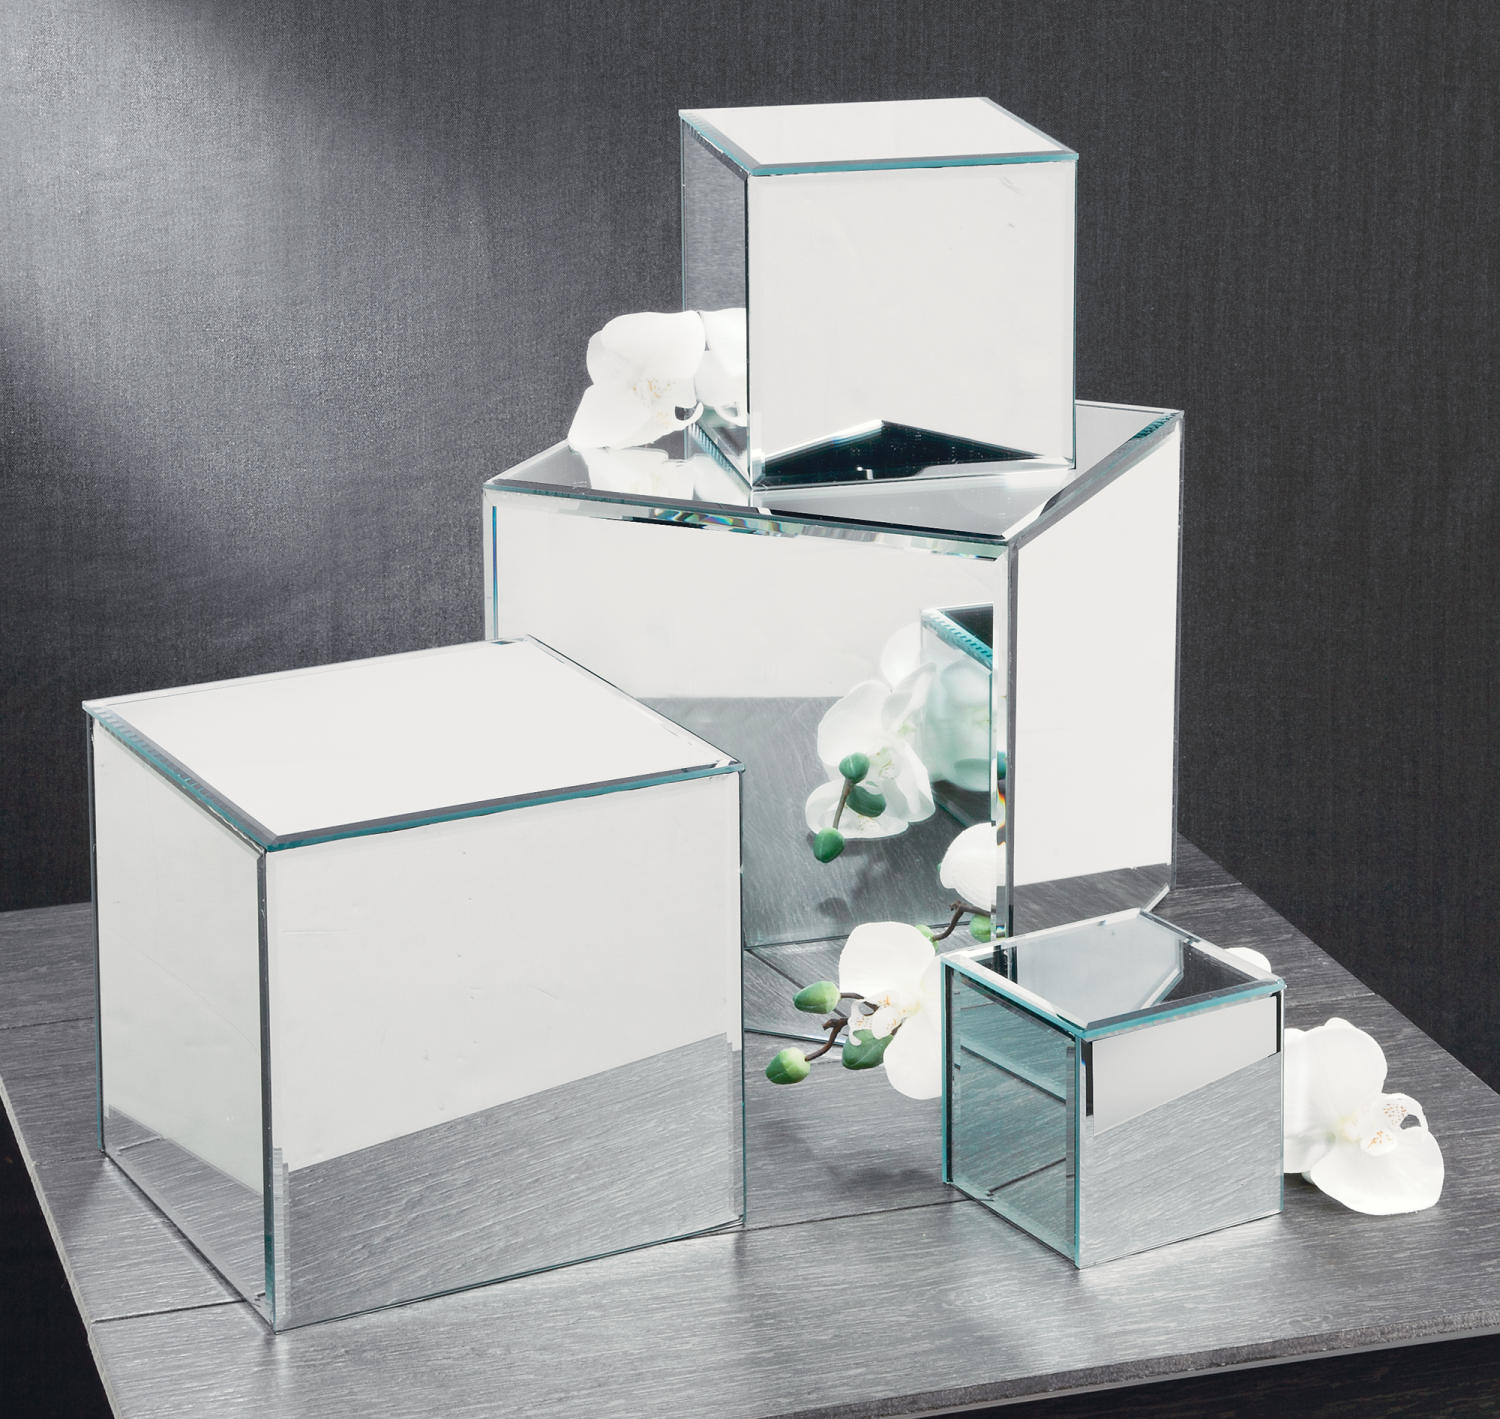 Square Glass Mirror Risers   (Tiered Displays & Platforms)